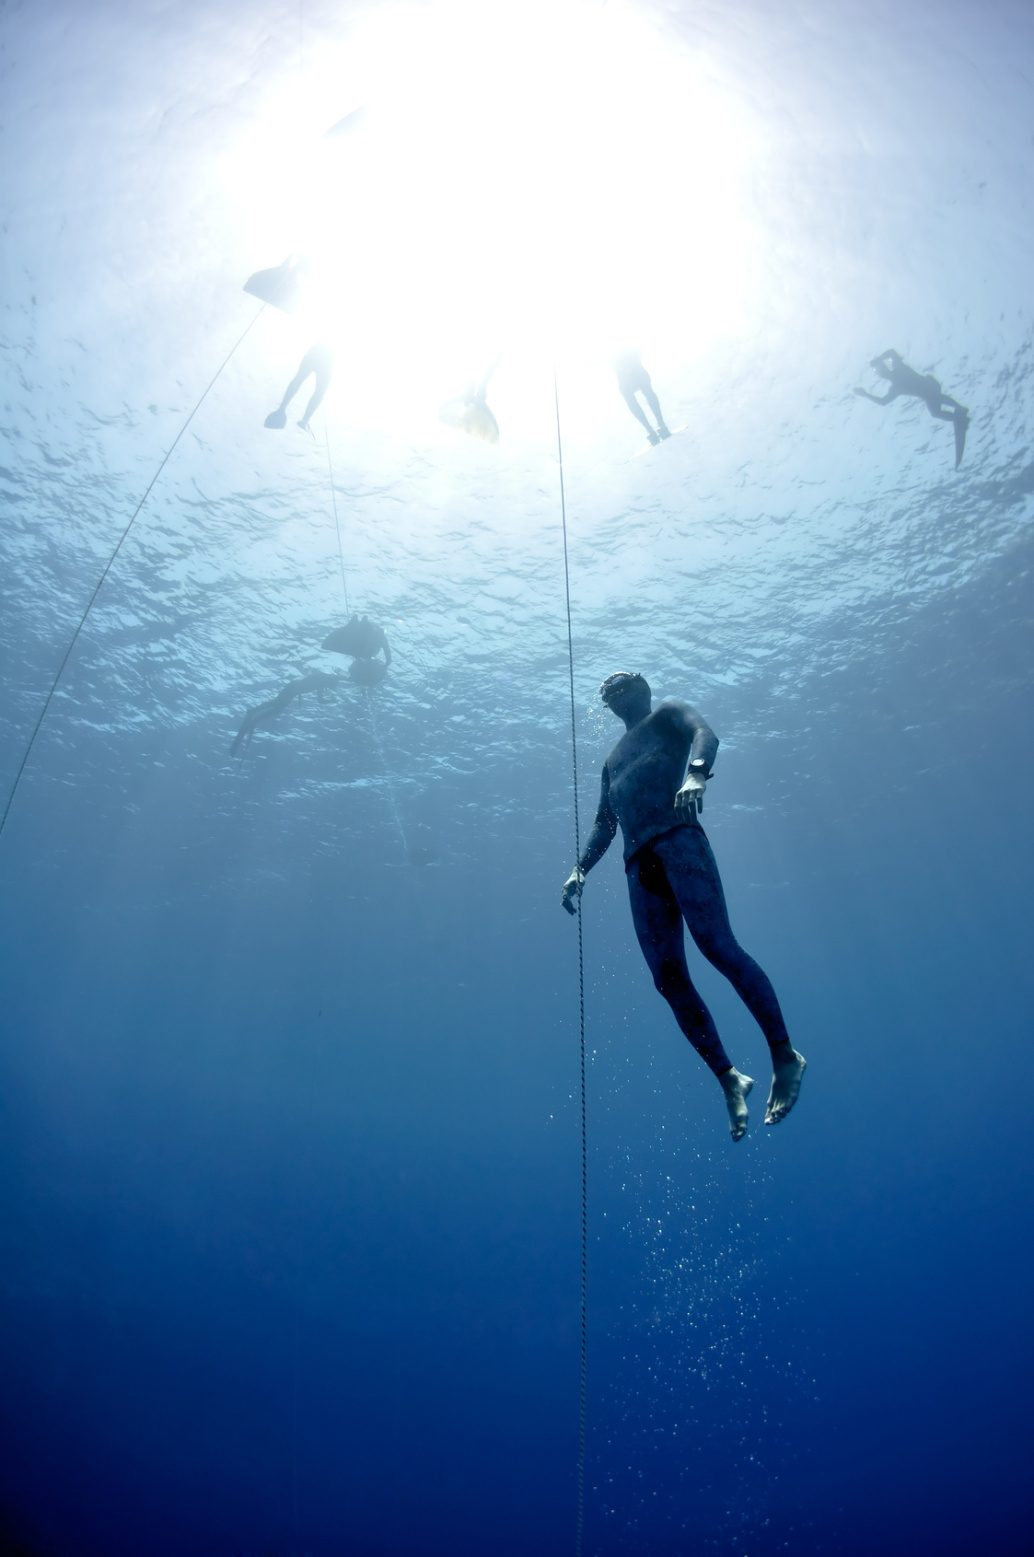 Freediver makes preparation dive near the safety line by breaststroke. Picture shows a part of freediving training session in Blue Hole, Dahab, Egypt